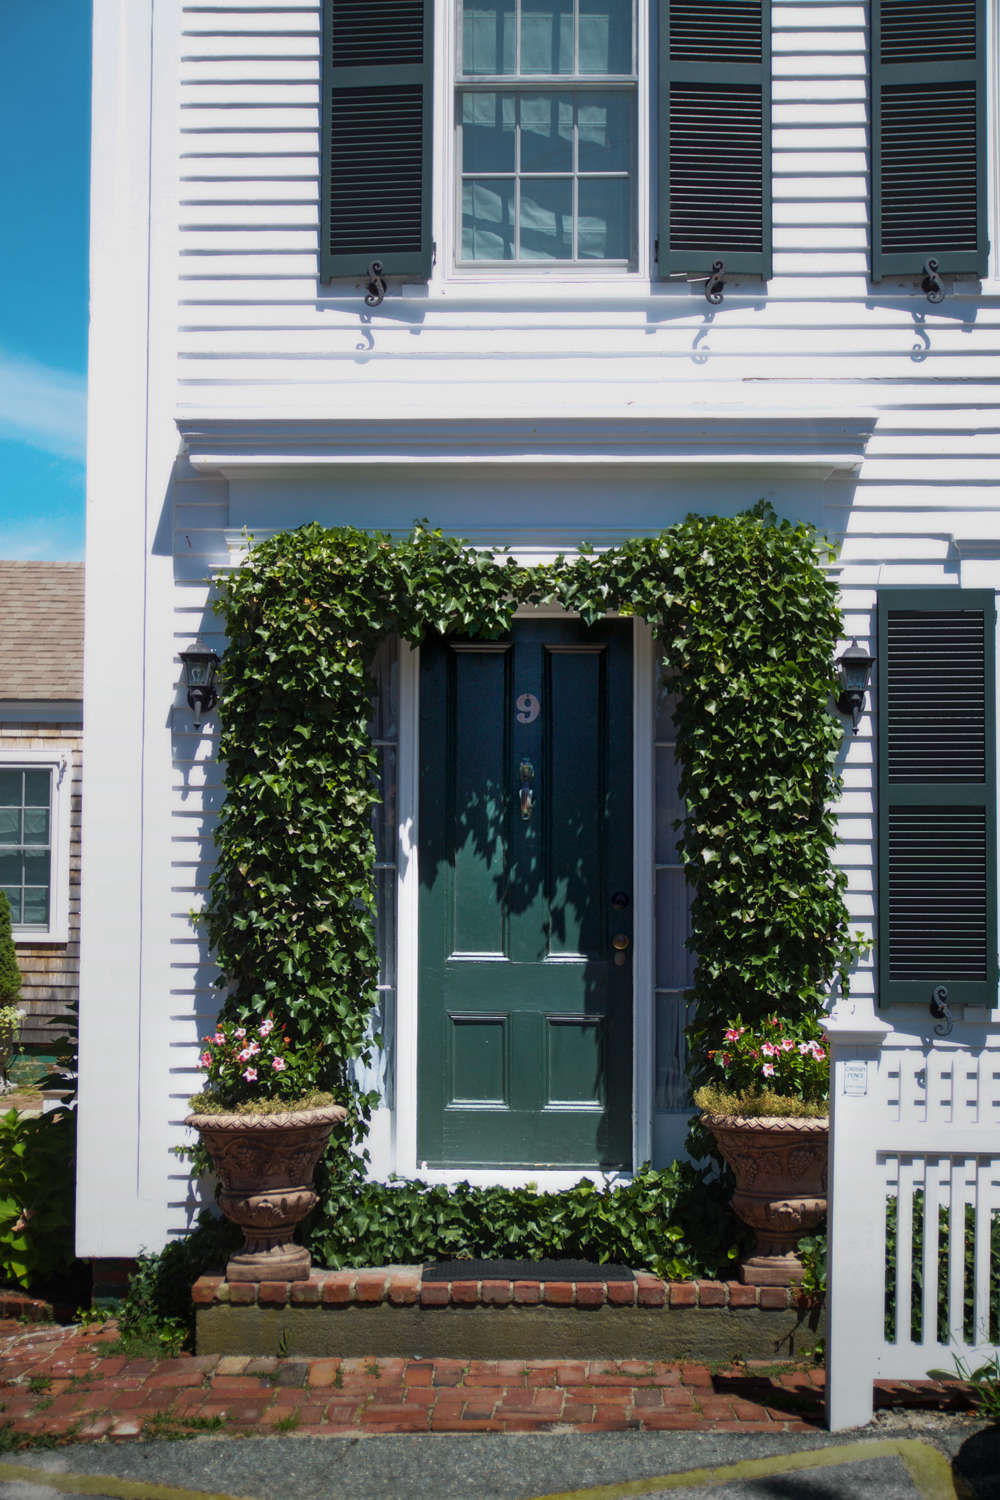 On our way to one of Tim&#8\2\17;s gardens, we passed an ivy-framed doorway that has a cooling effect on a sun-bleach facade of a classical house.